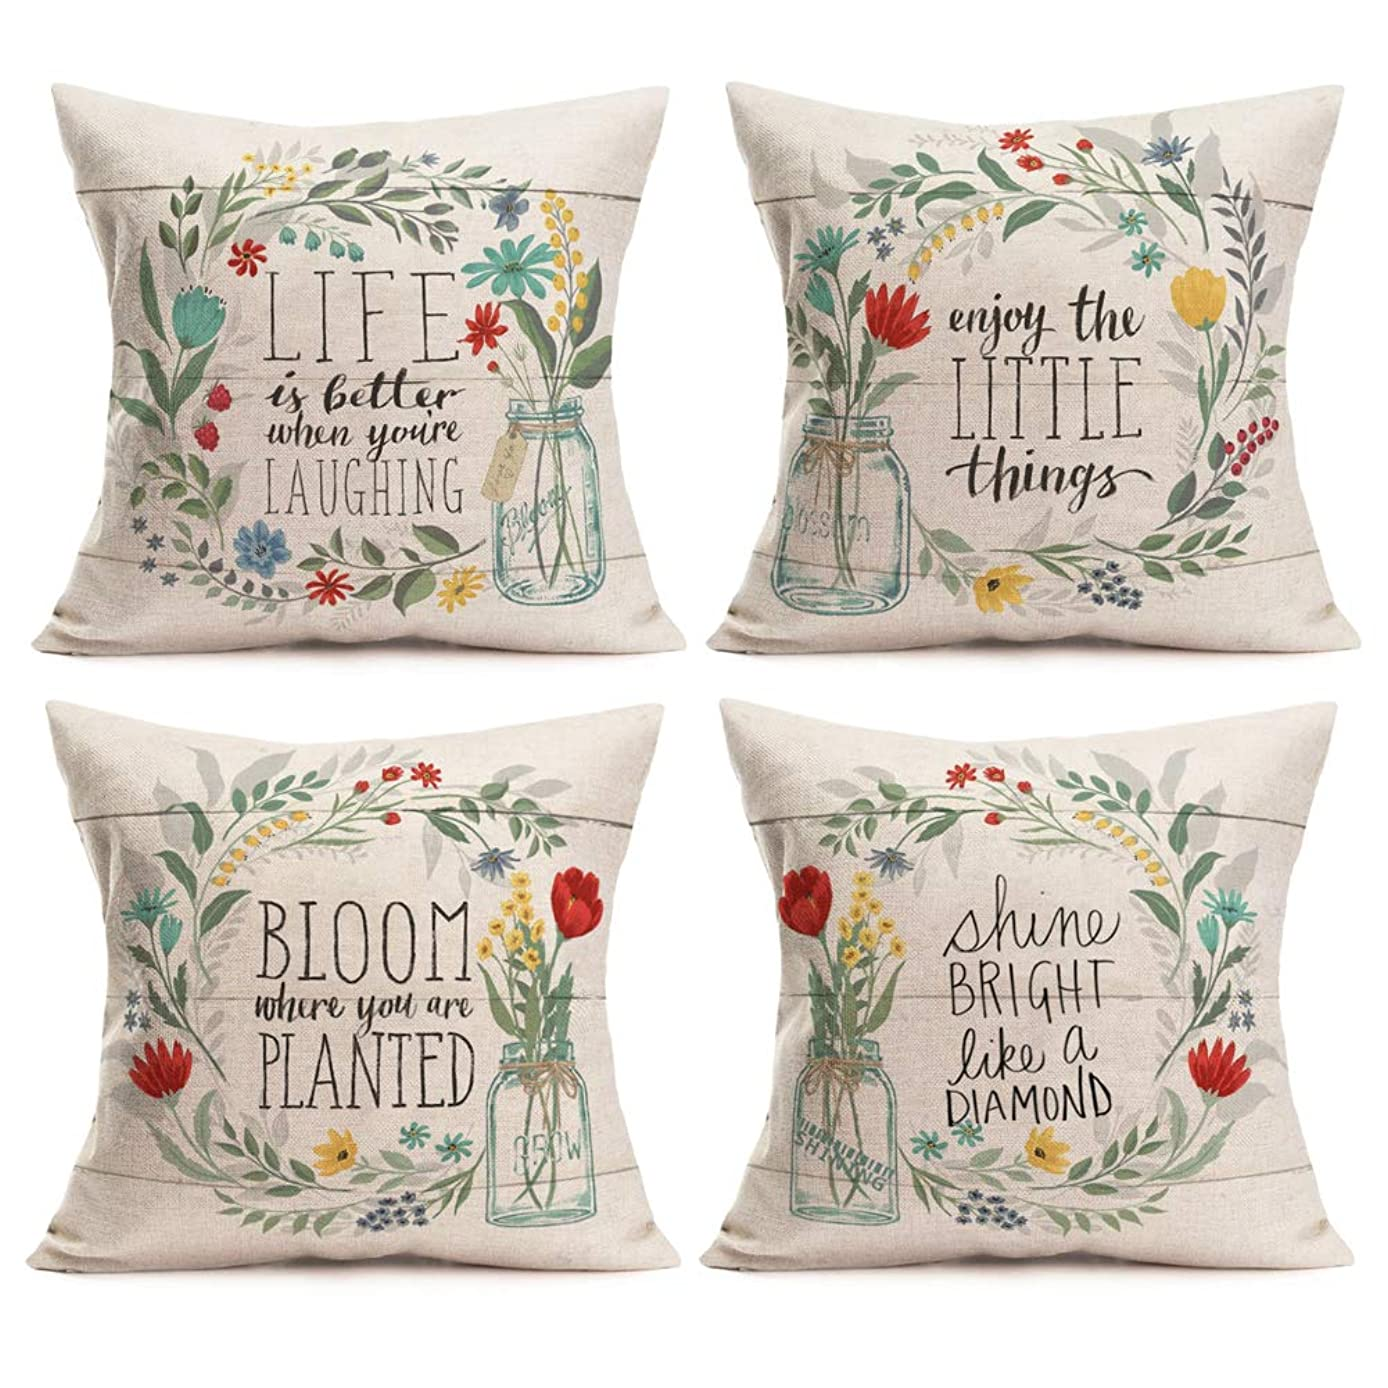 Asamour Set of 4 Rustic Floral Farmhouse Decor Throw Pillow Case Cushion Cover Vintage Flowers Wreath Inspirational Quote Pillows Cotton Linen 18x18 Inch Square Pillowcases for Patio Couch,Wood Grain